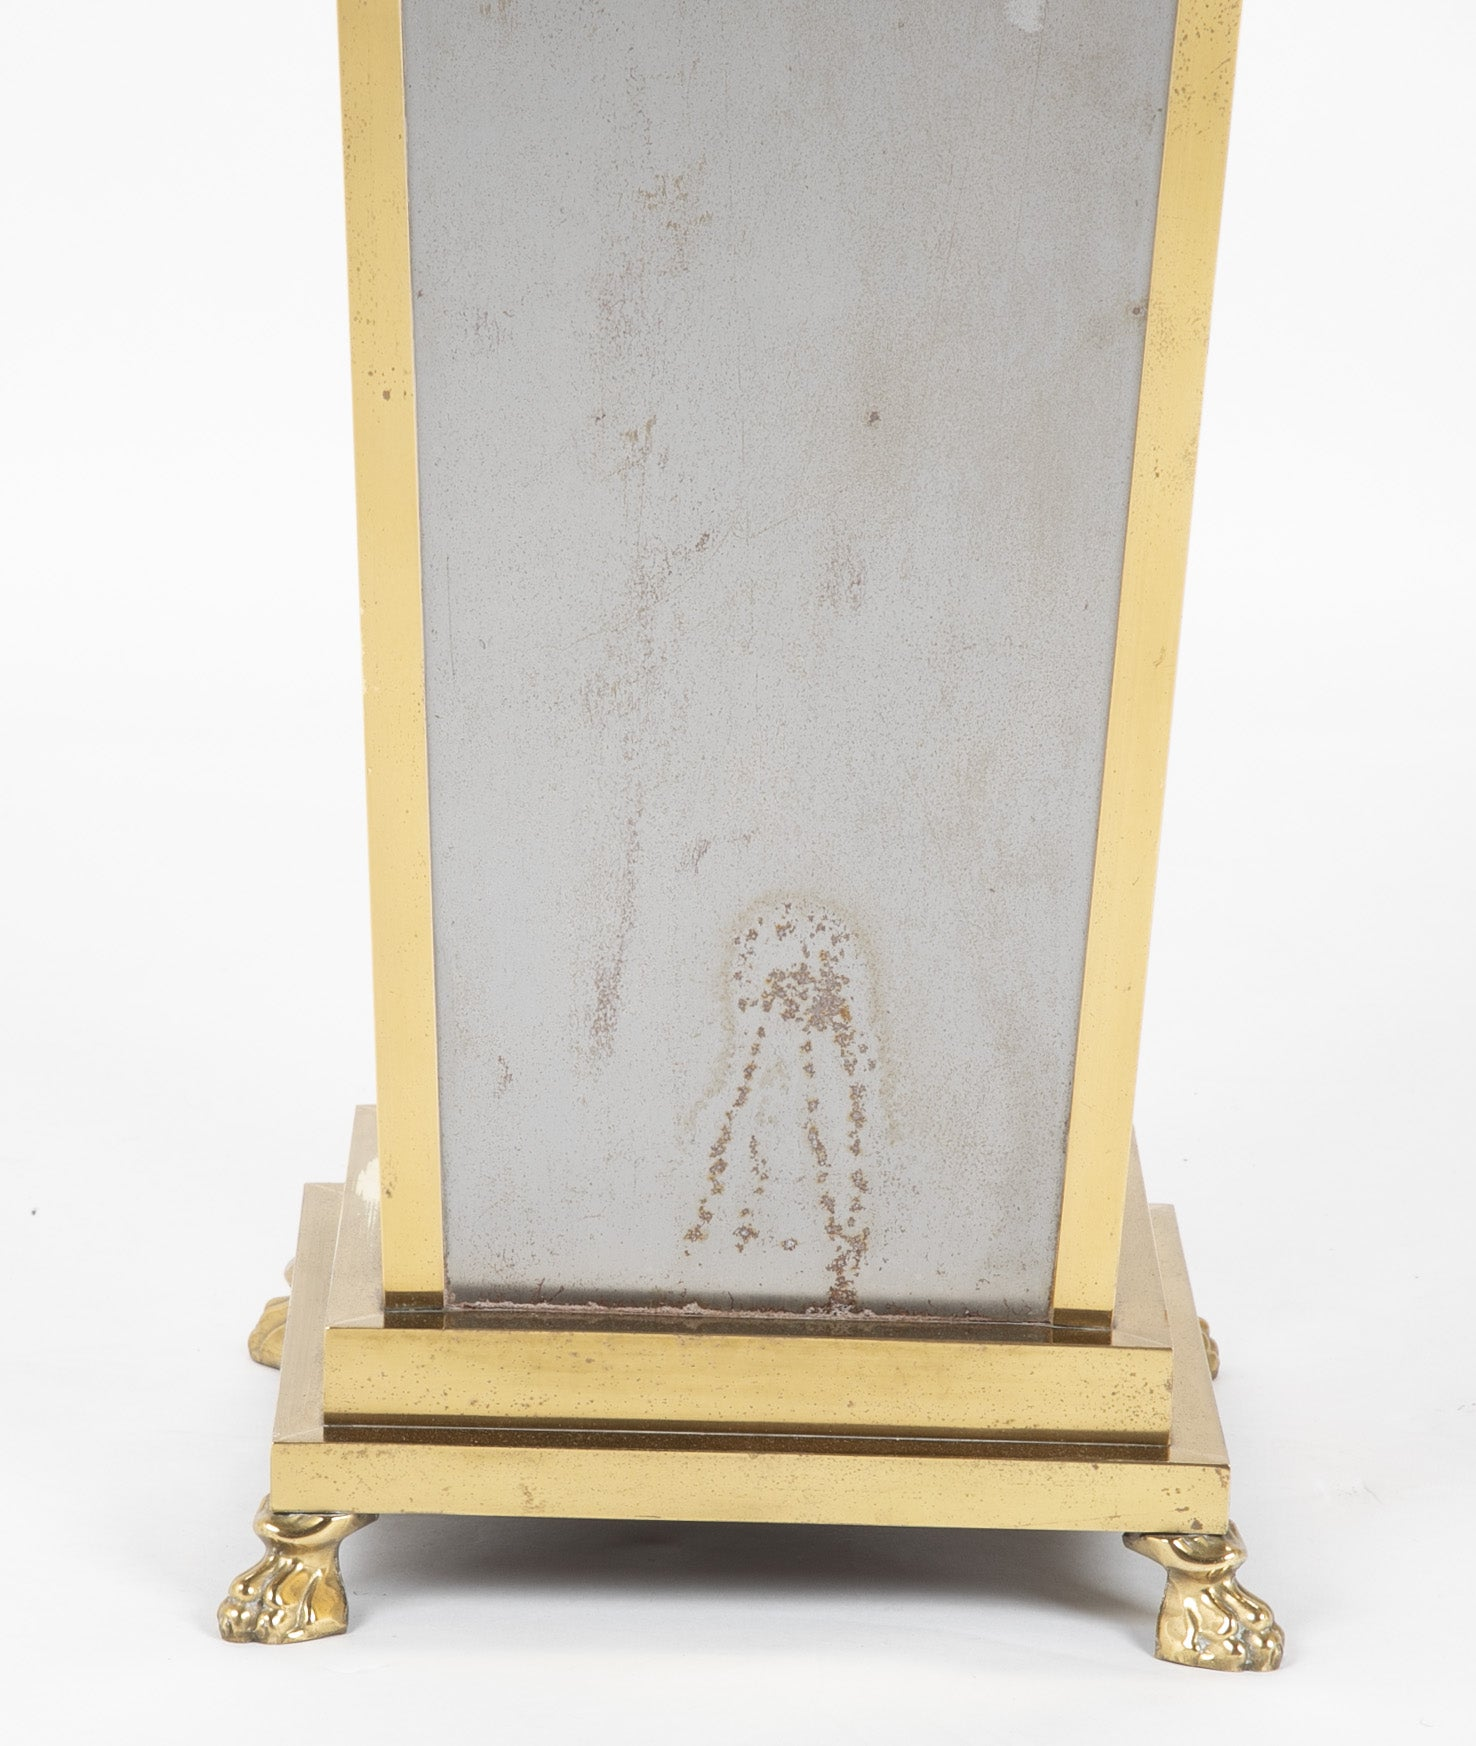 Steel and Brass Pedestal in the Manner of Maison Jansen